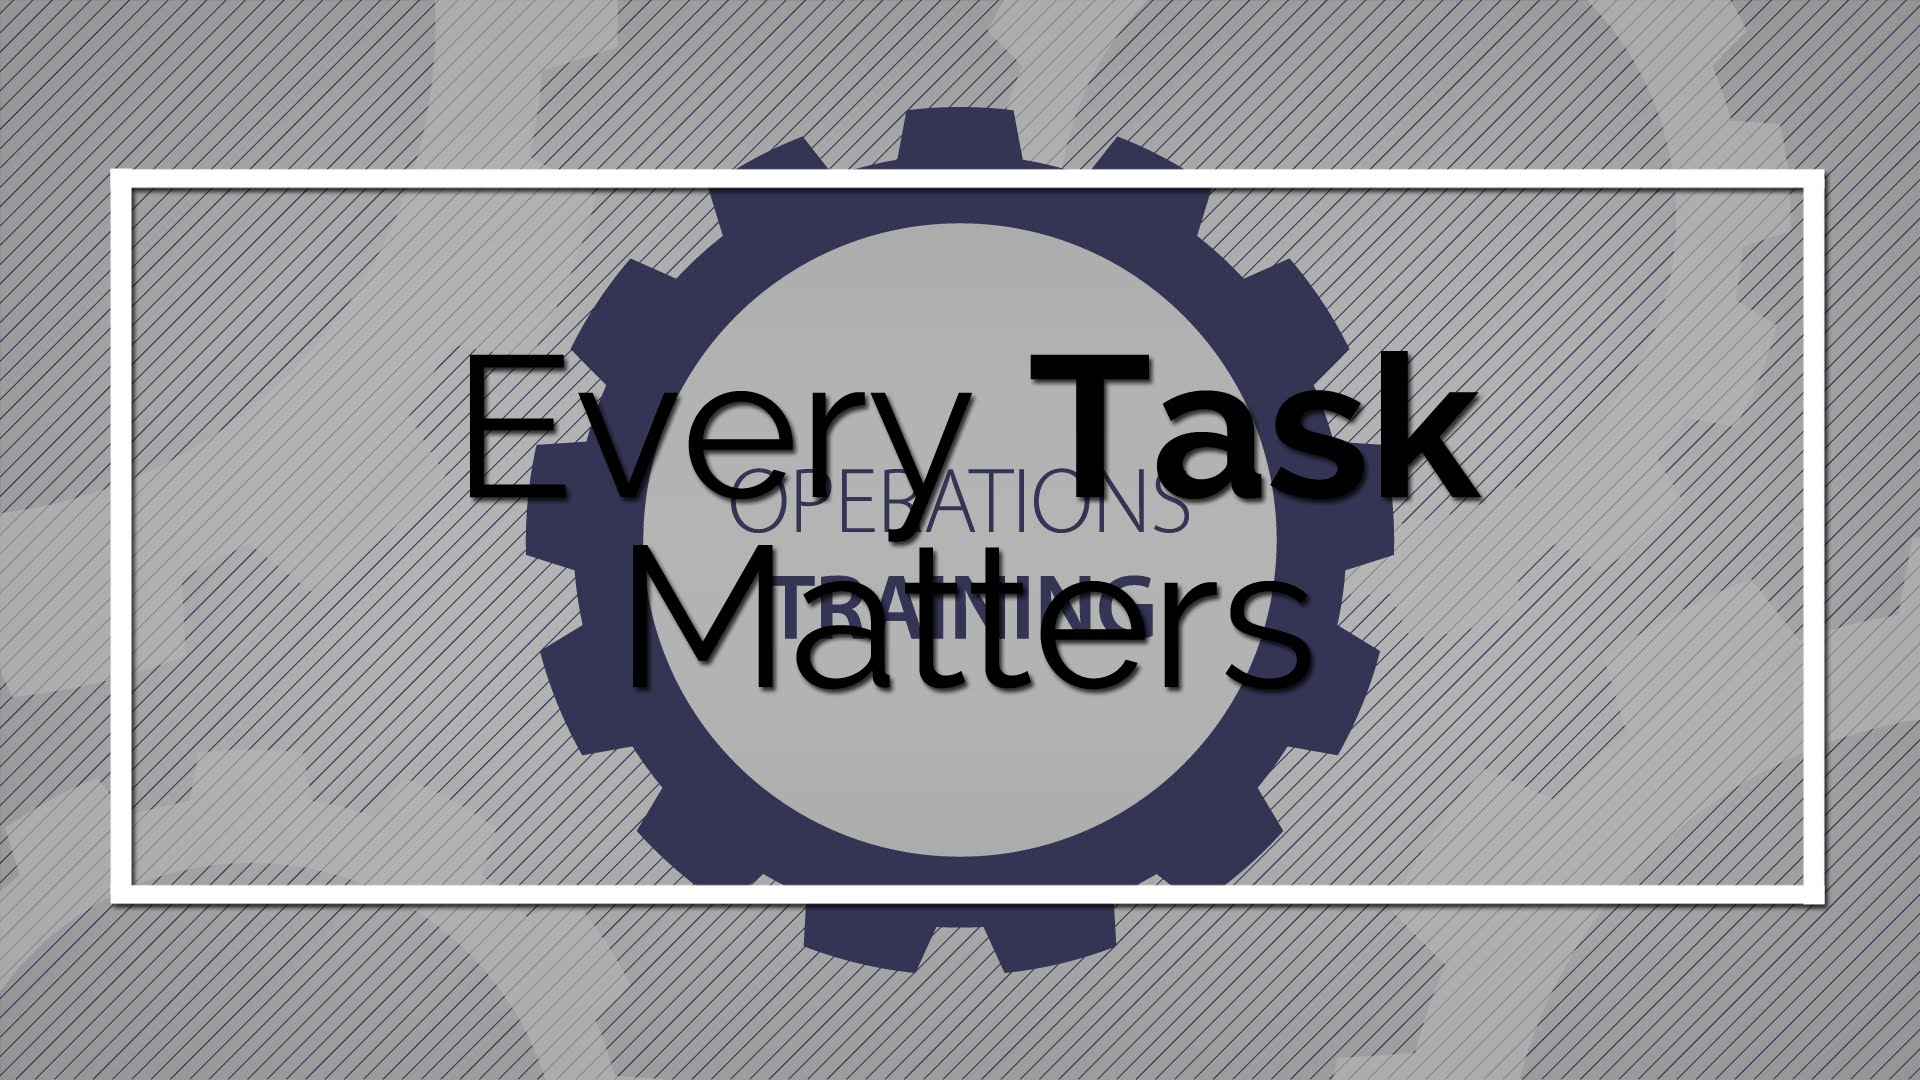 Operations Training: Every Task Matters